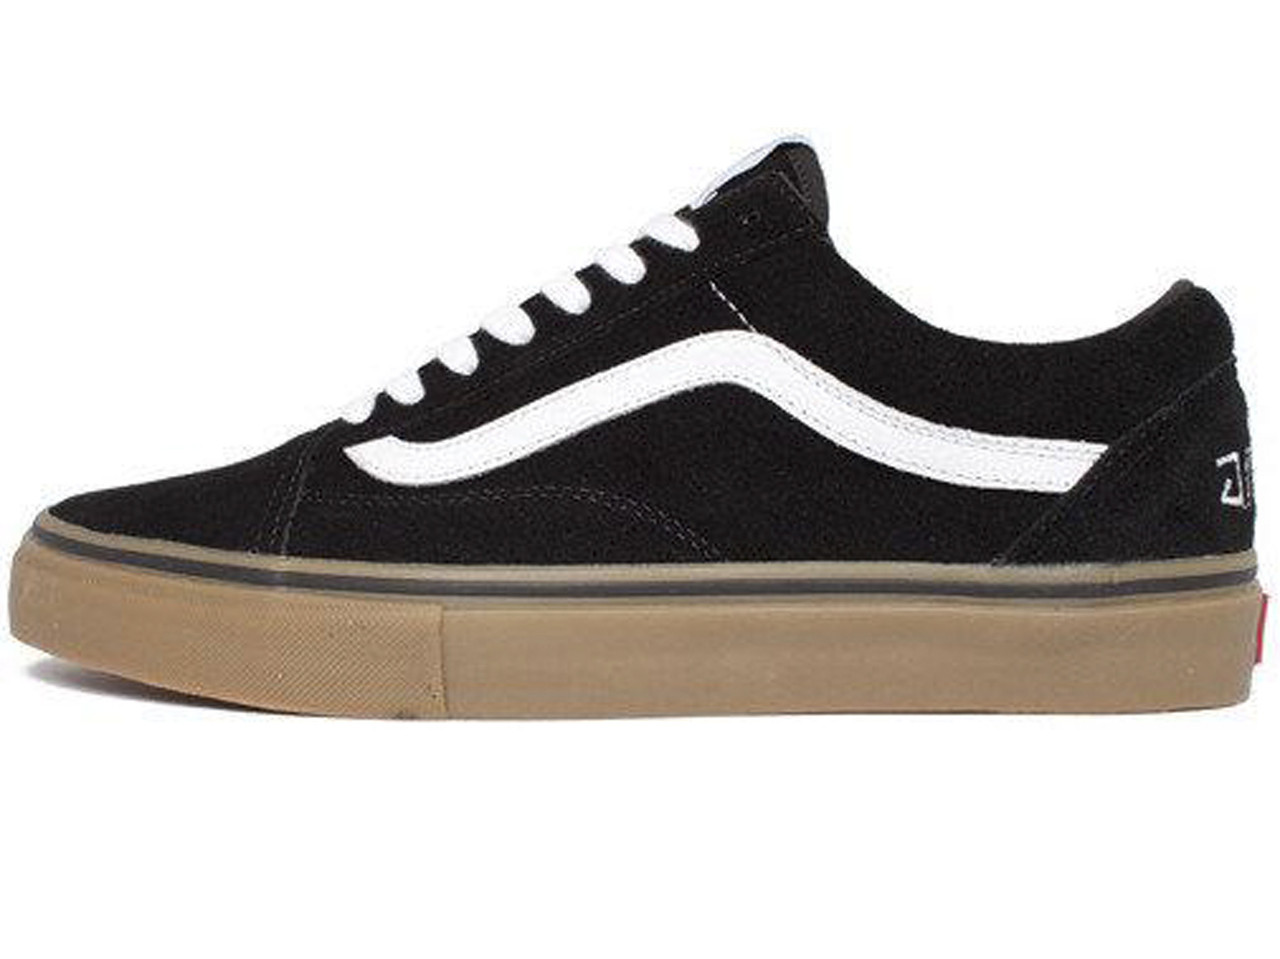 7ee54a331817 Мужские Кеды Vans Old Skool Black White Gum (Реплика ААА+) — в ...